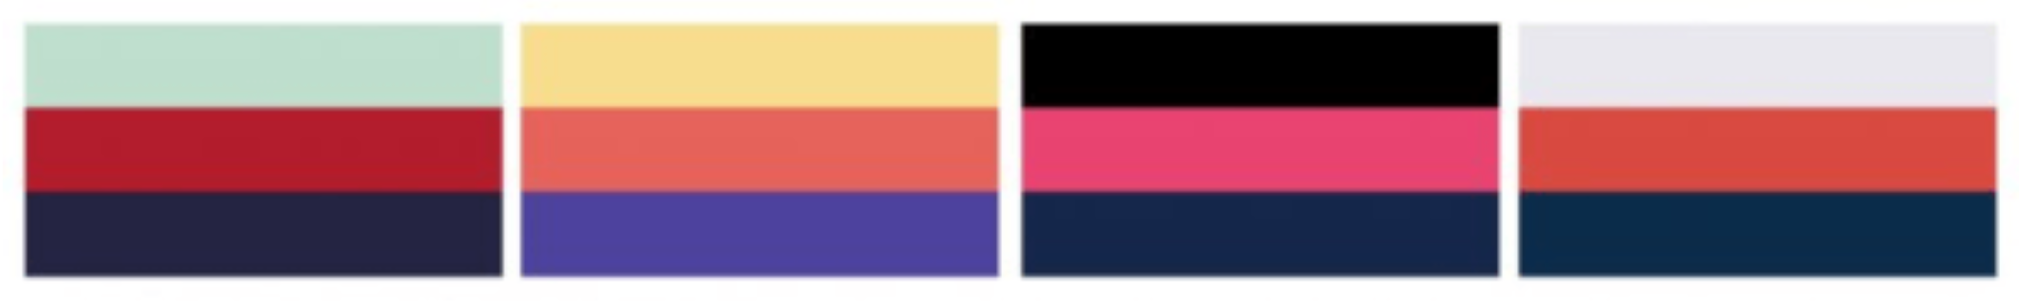 color palate for branding agency project